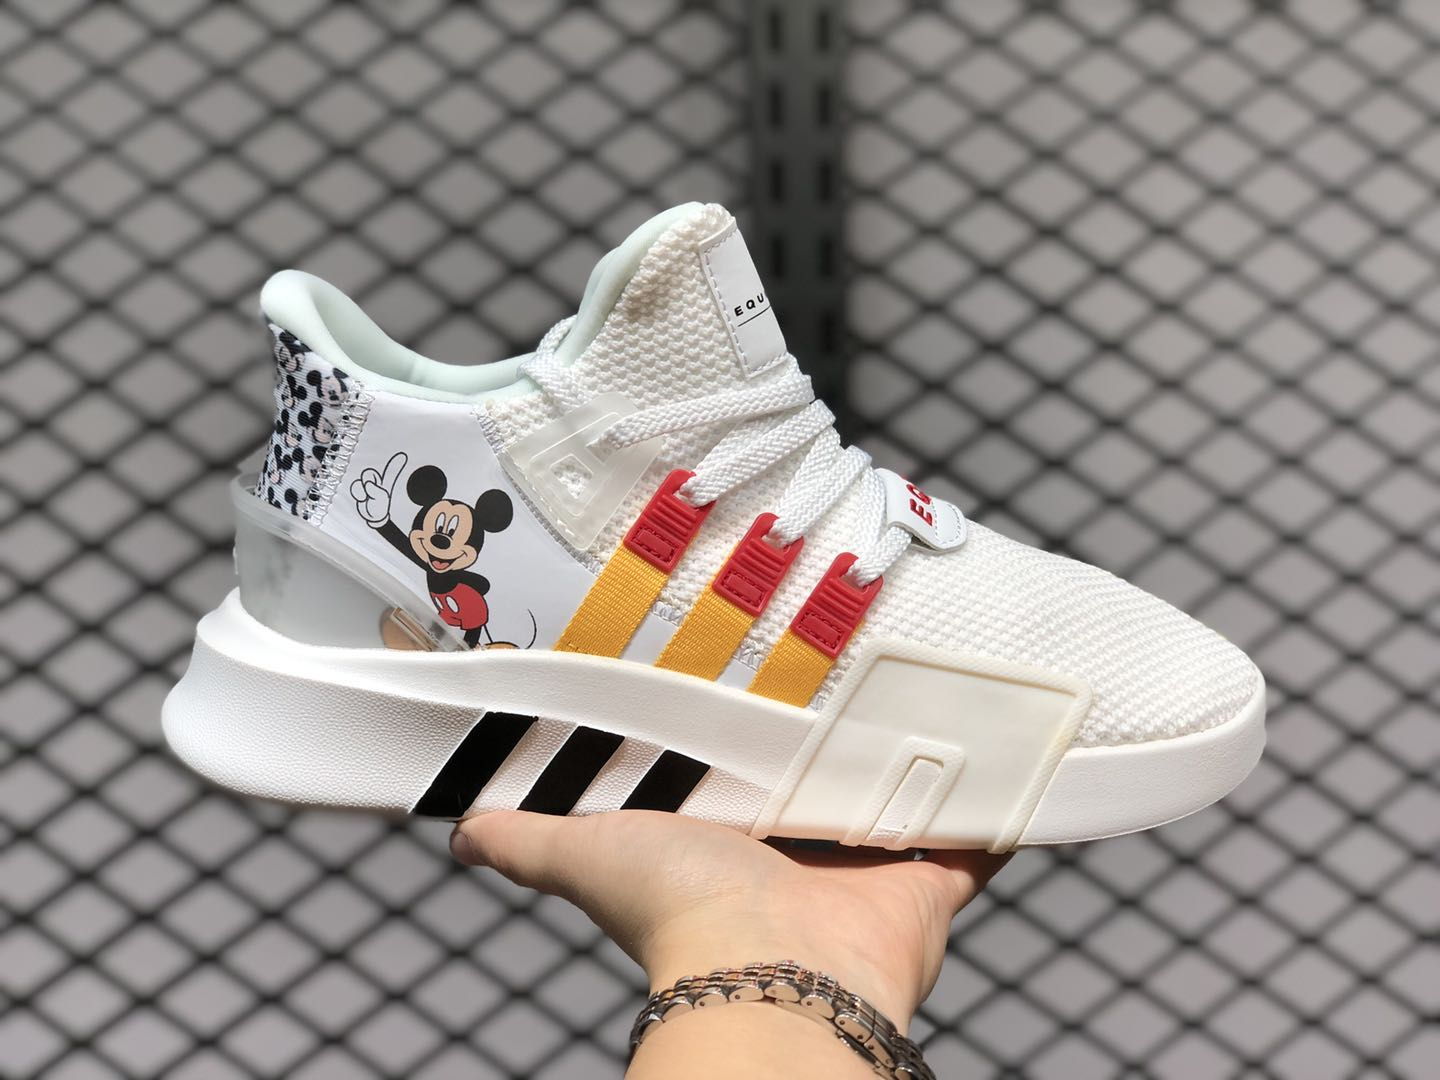 Disney x Adidas EQT Bask ADV Cloud White/Yellow/Red FW2020